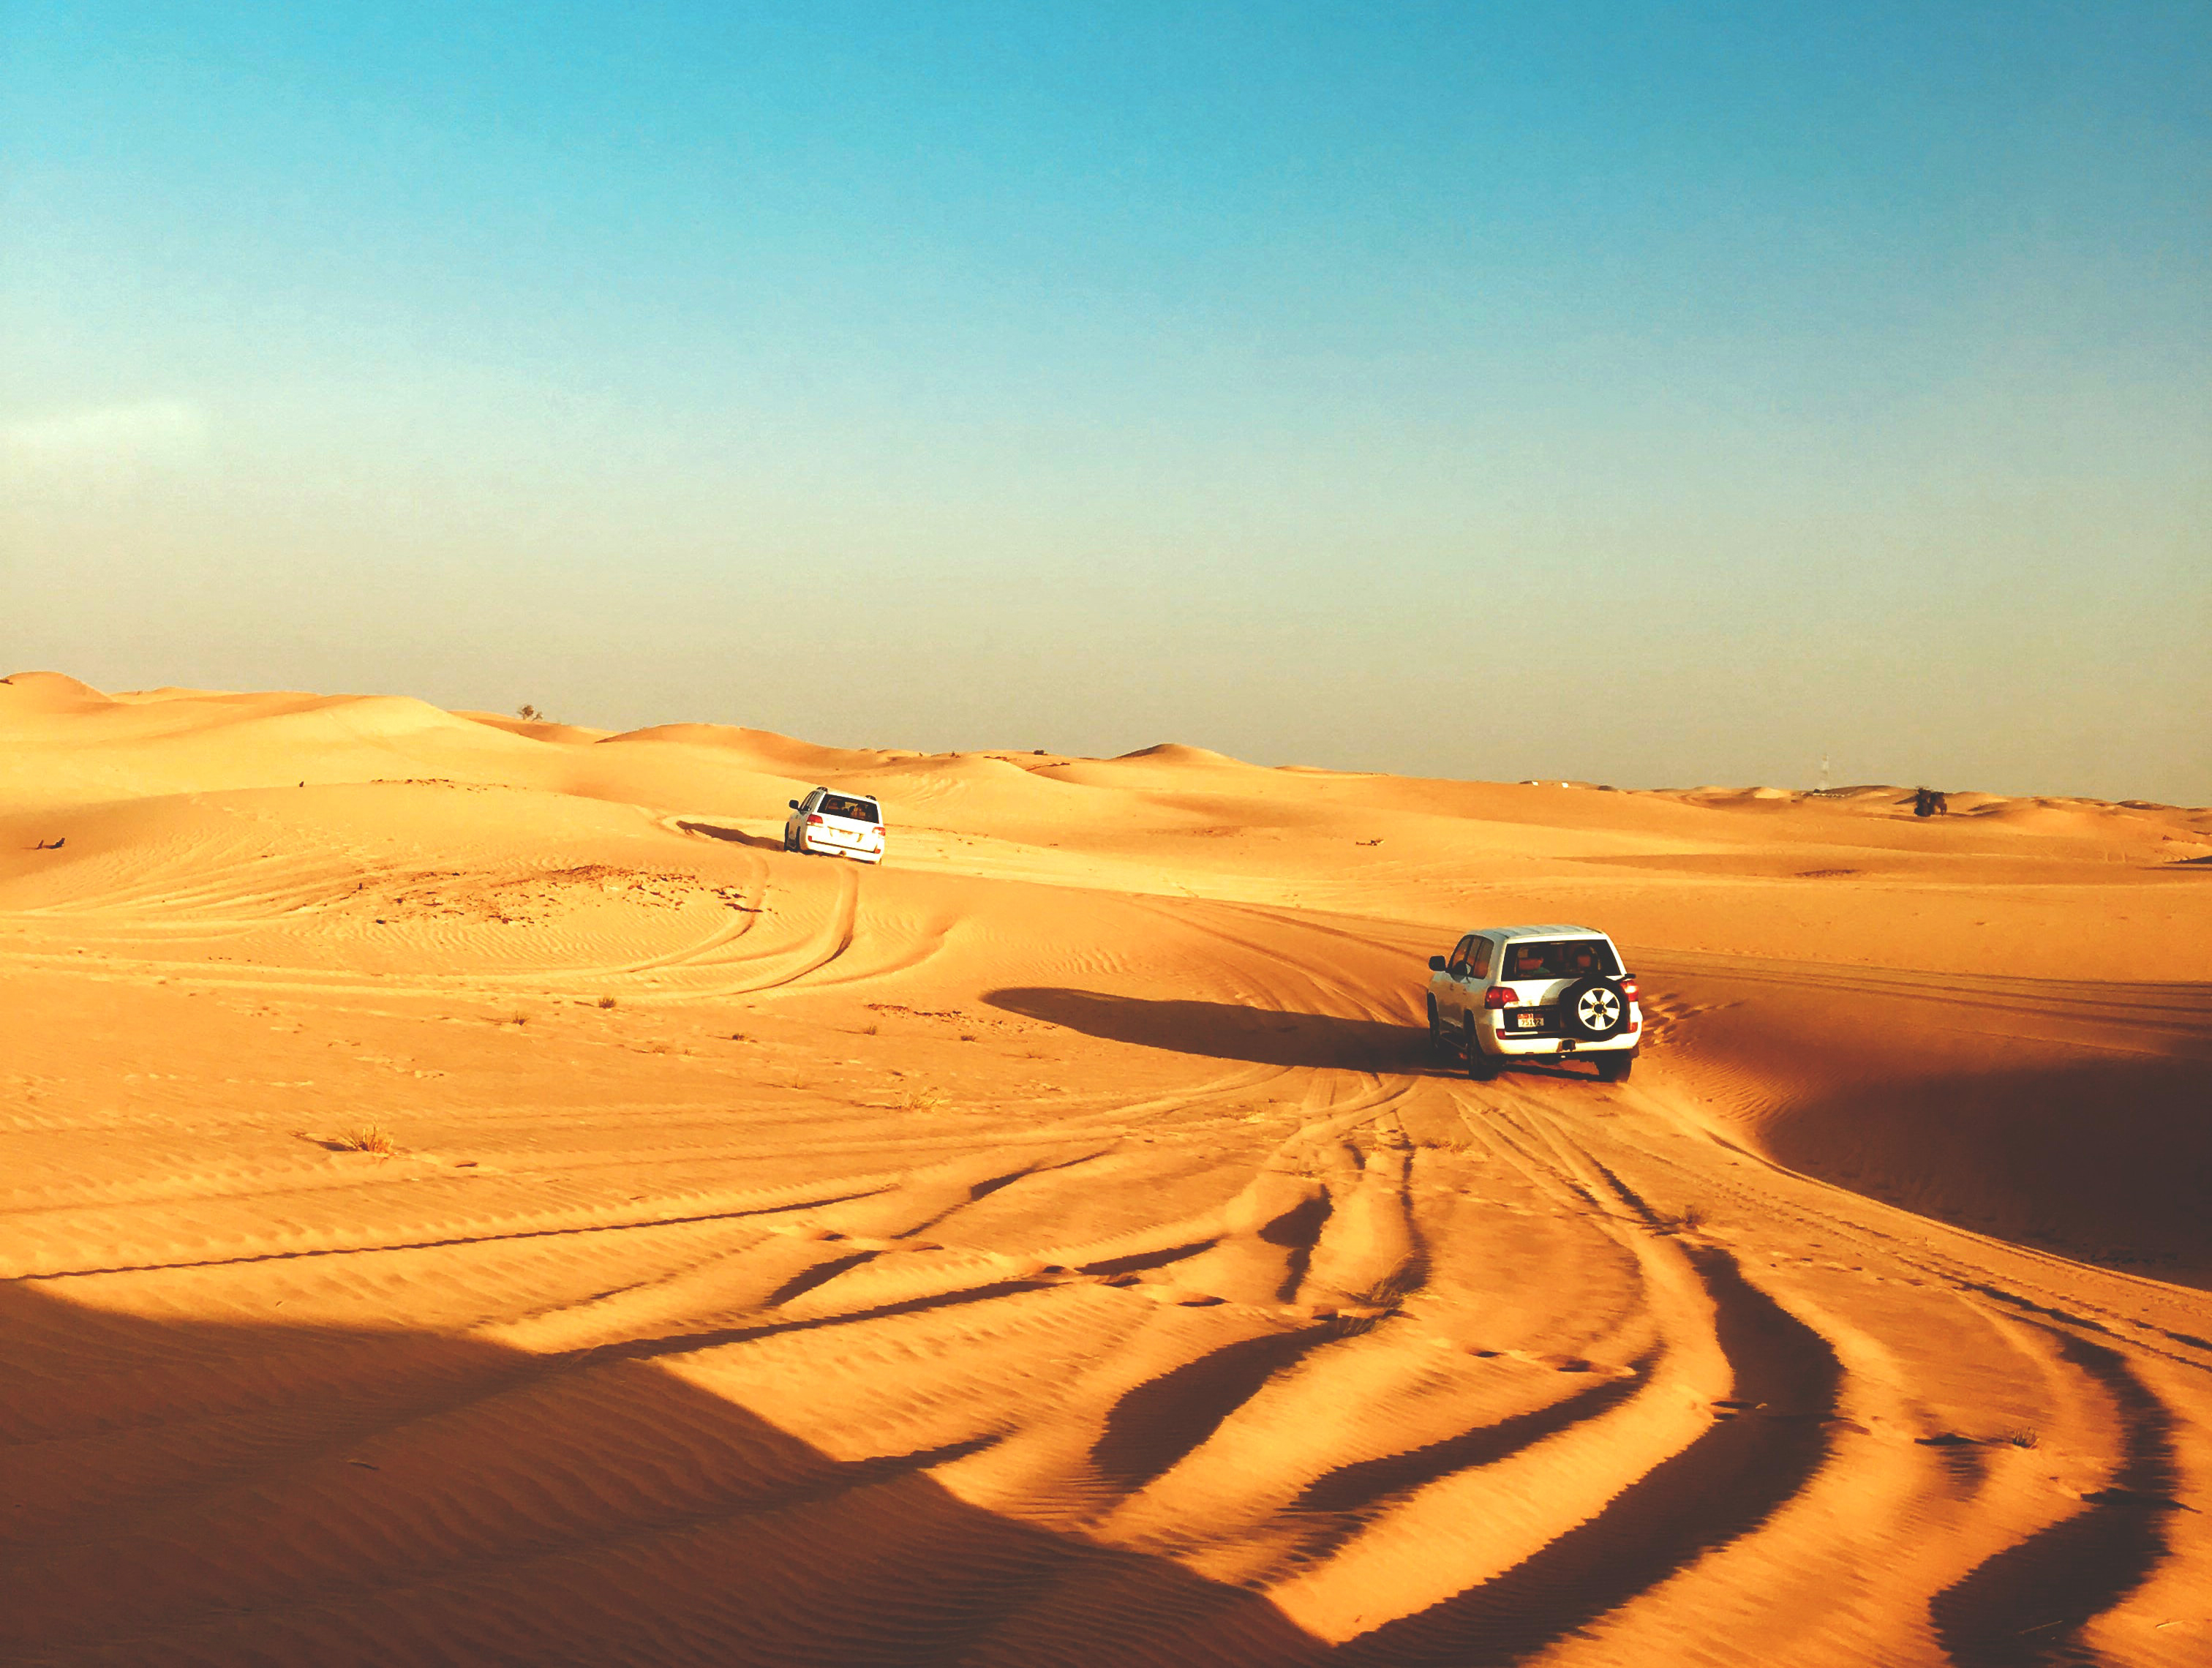 THE TASTE OF DUNE BASHING IN DUBAI